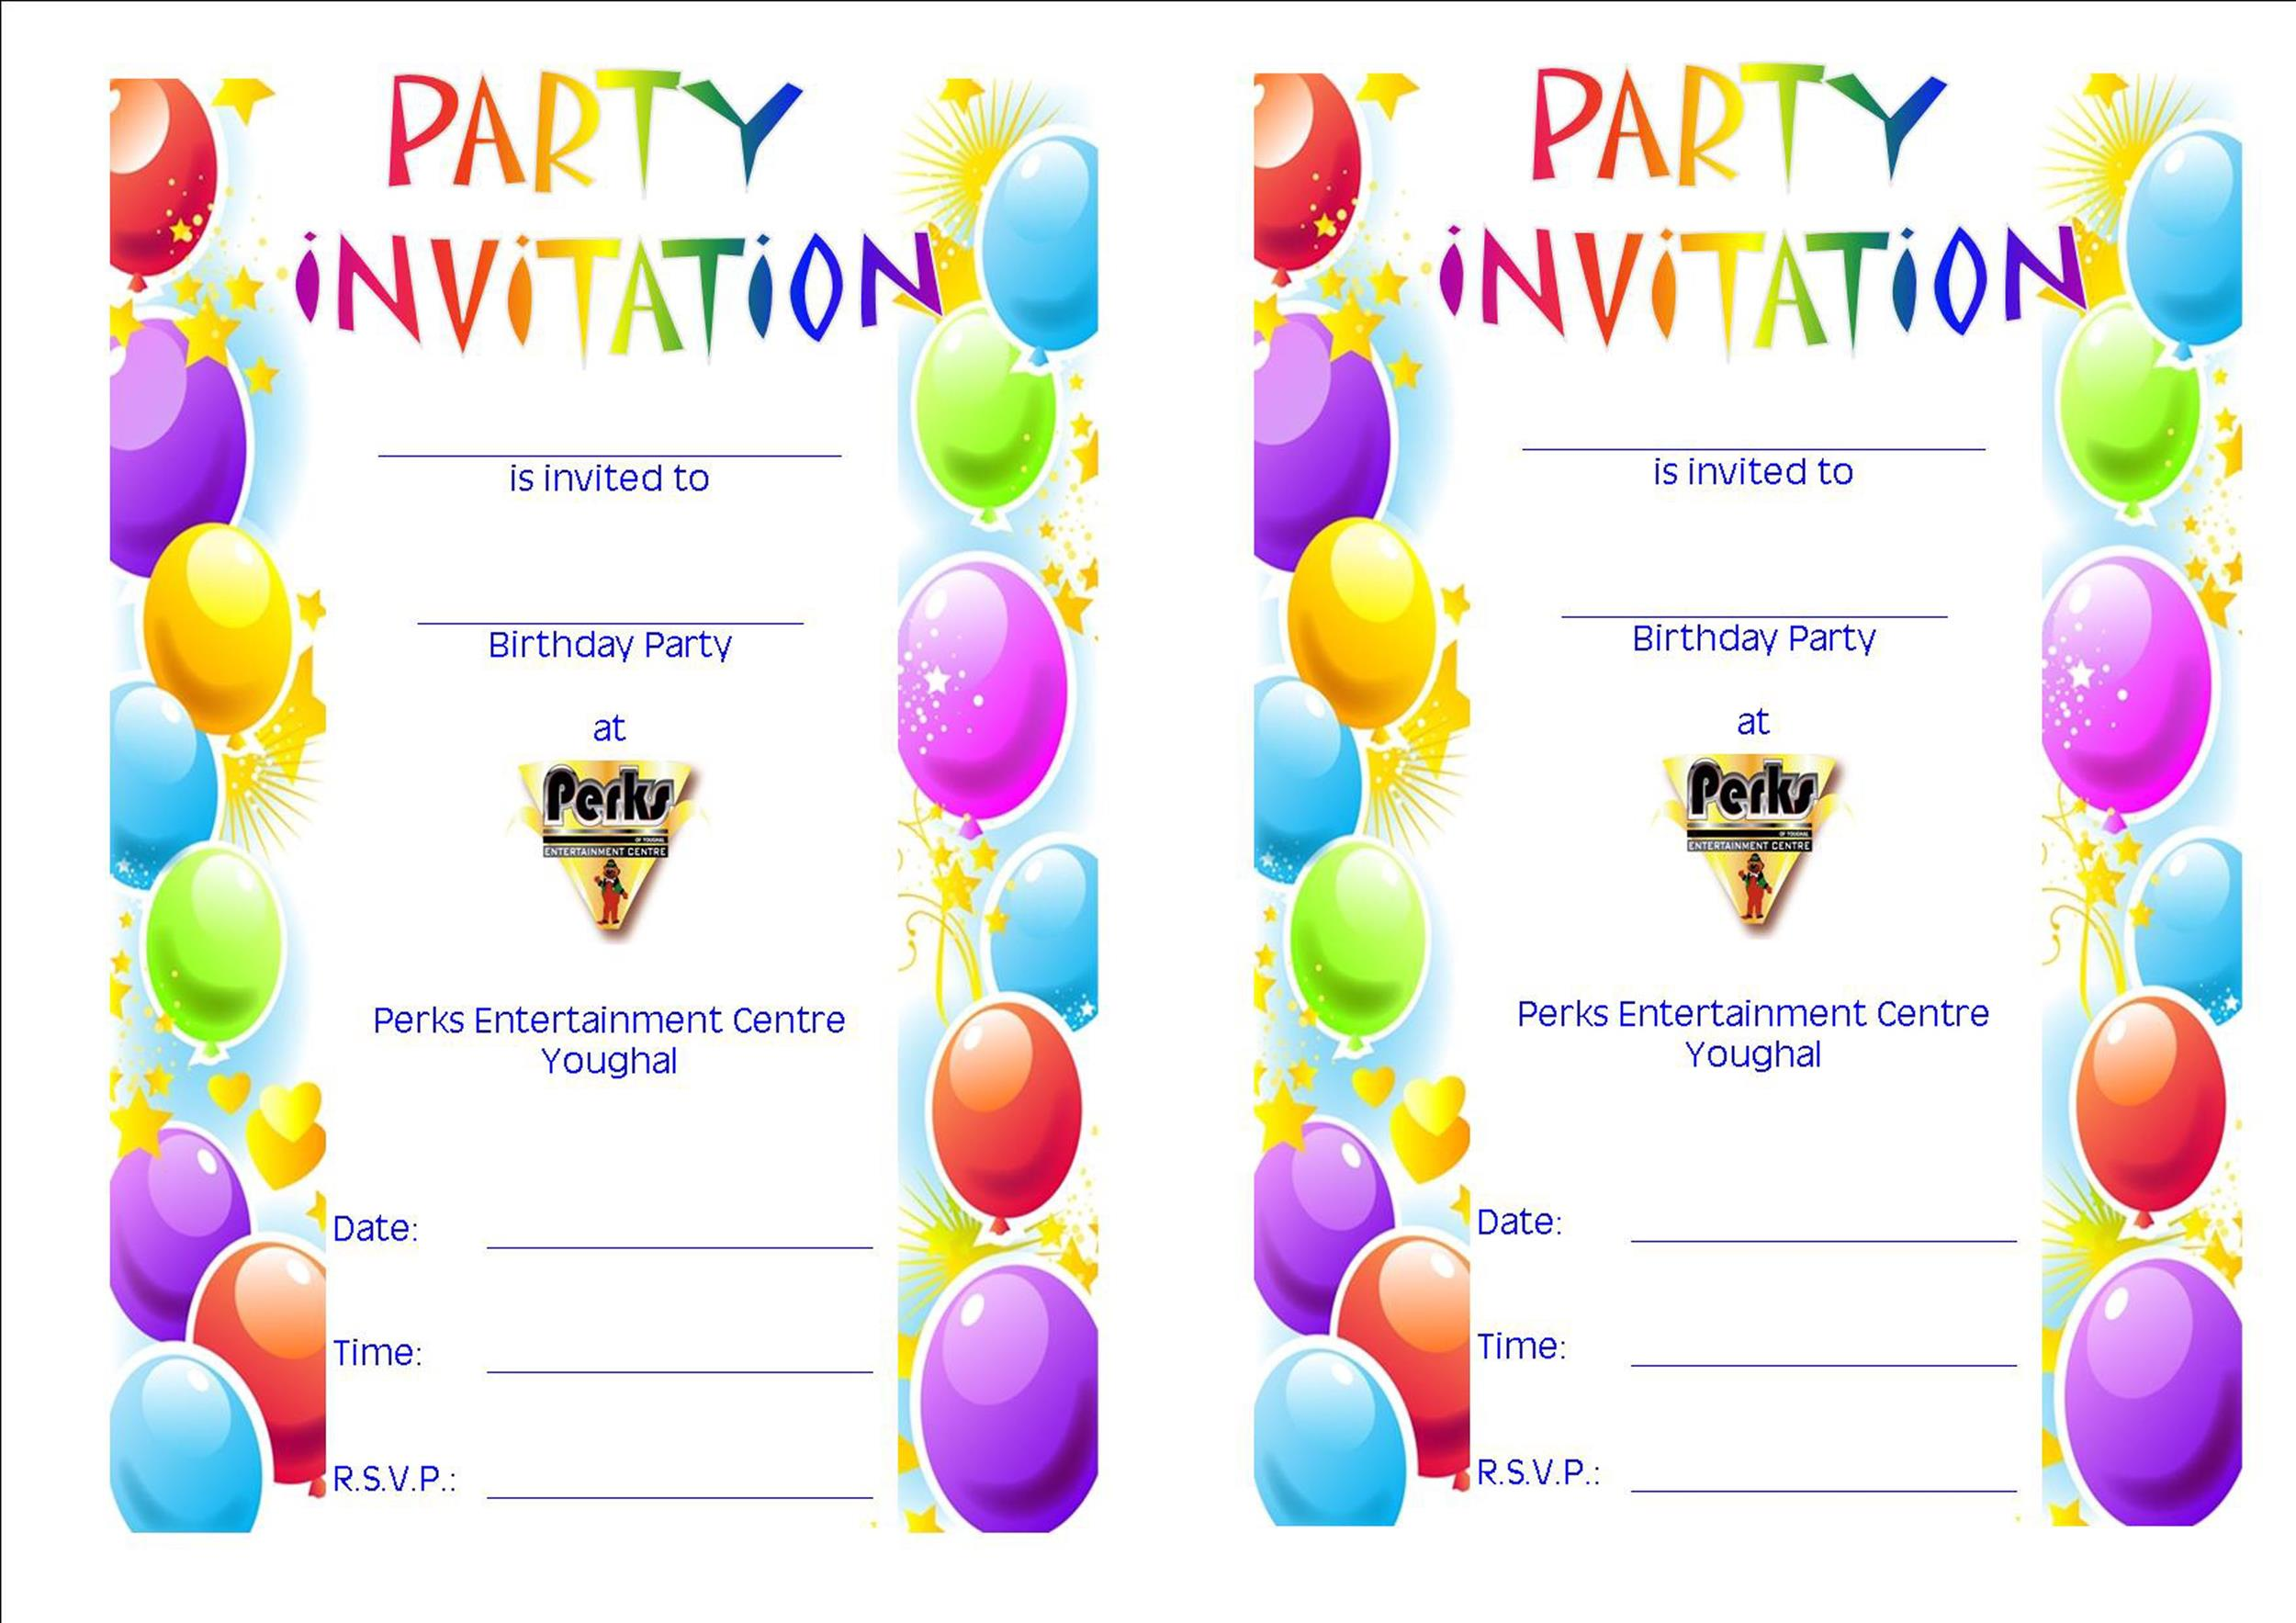 40 Free Birthday Party Invitation Templates ᐅ Template Lab